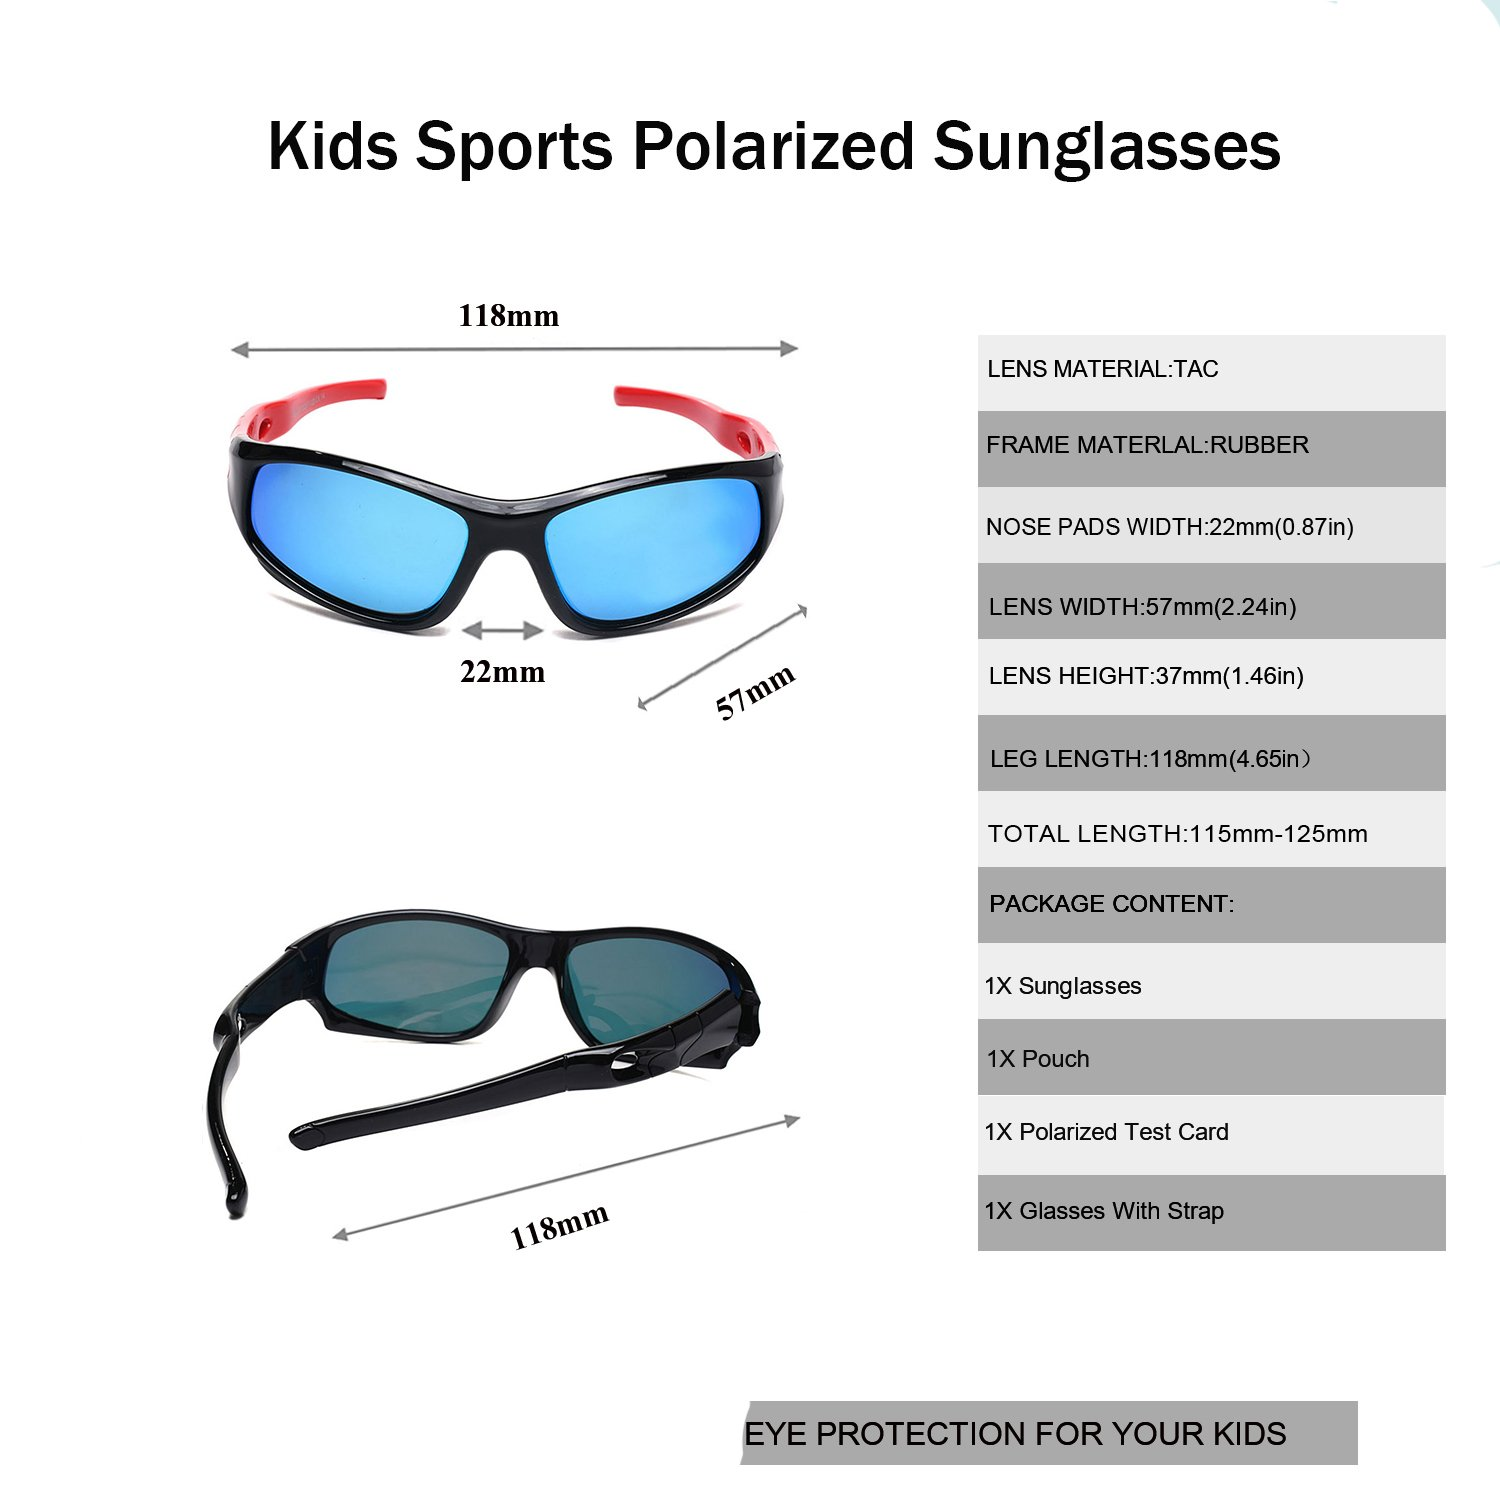 181004a035 Aoduoke sports polarized kids sunglasses for boys girls children mirrored  lens sunglasses with strap jpg 1500x1500